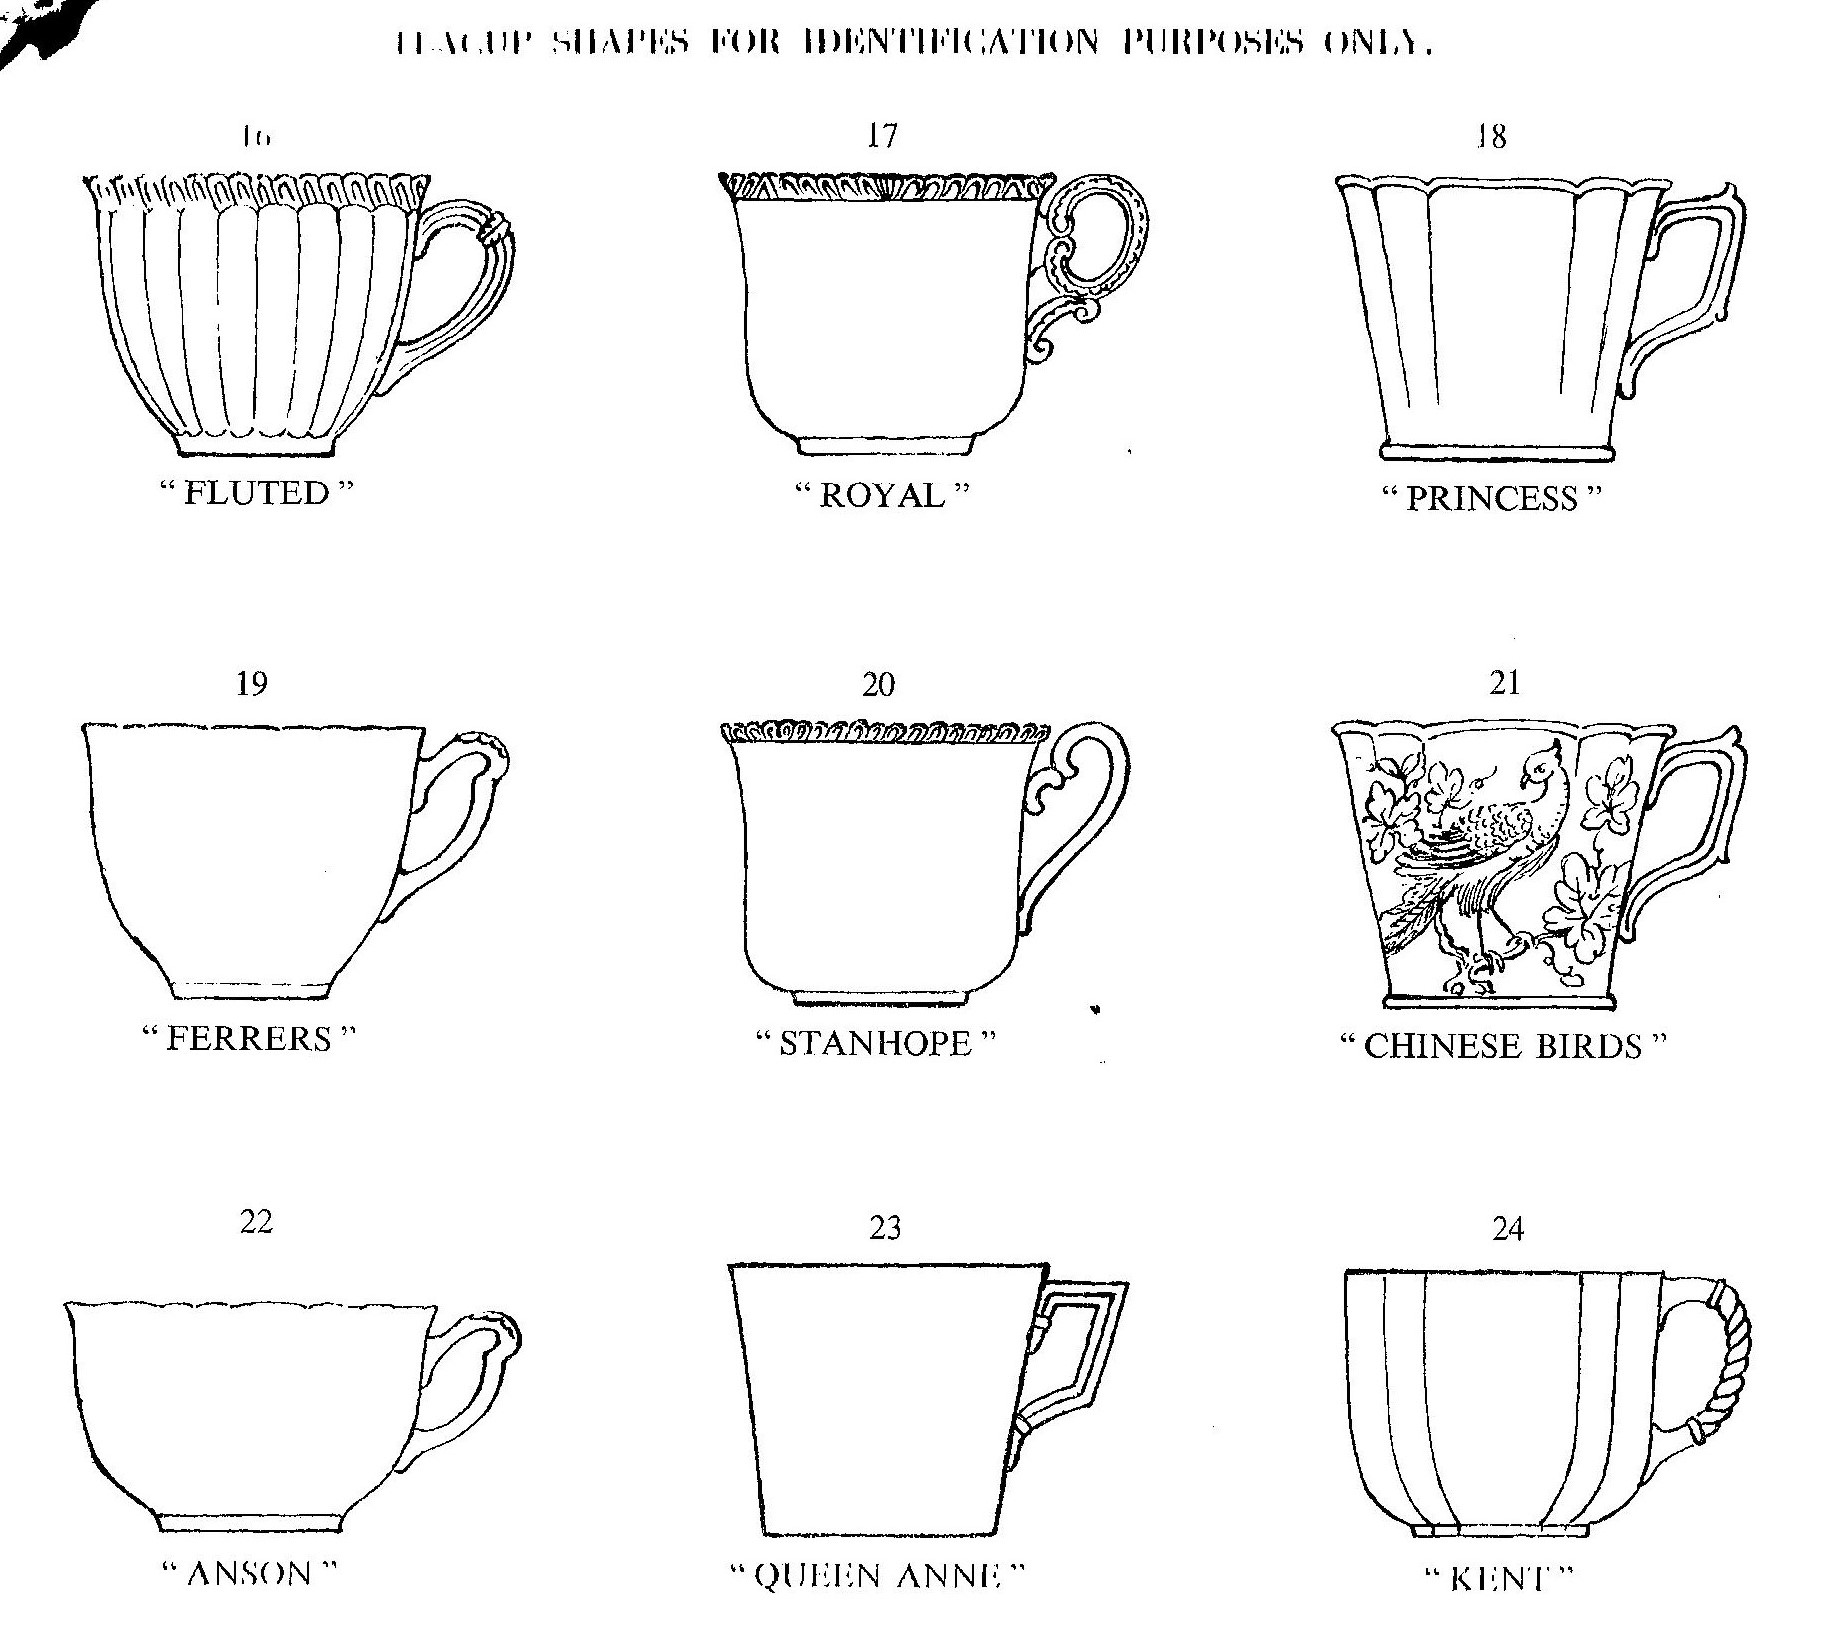 royal-crown-derby-1952-shapes-16-24